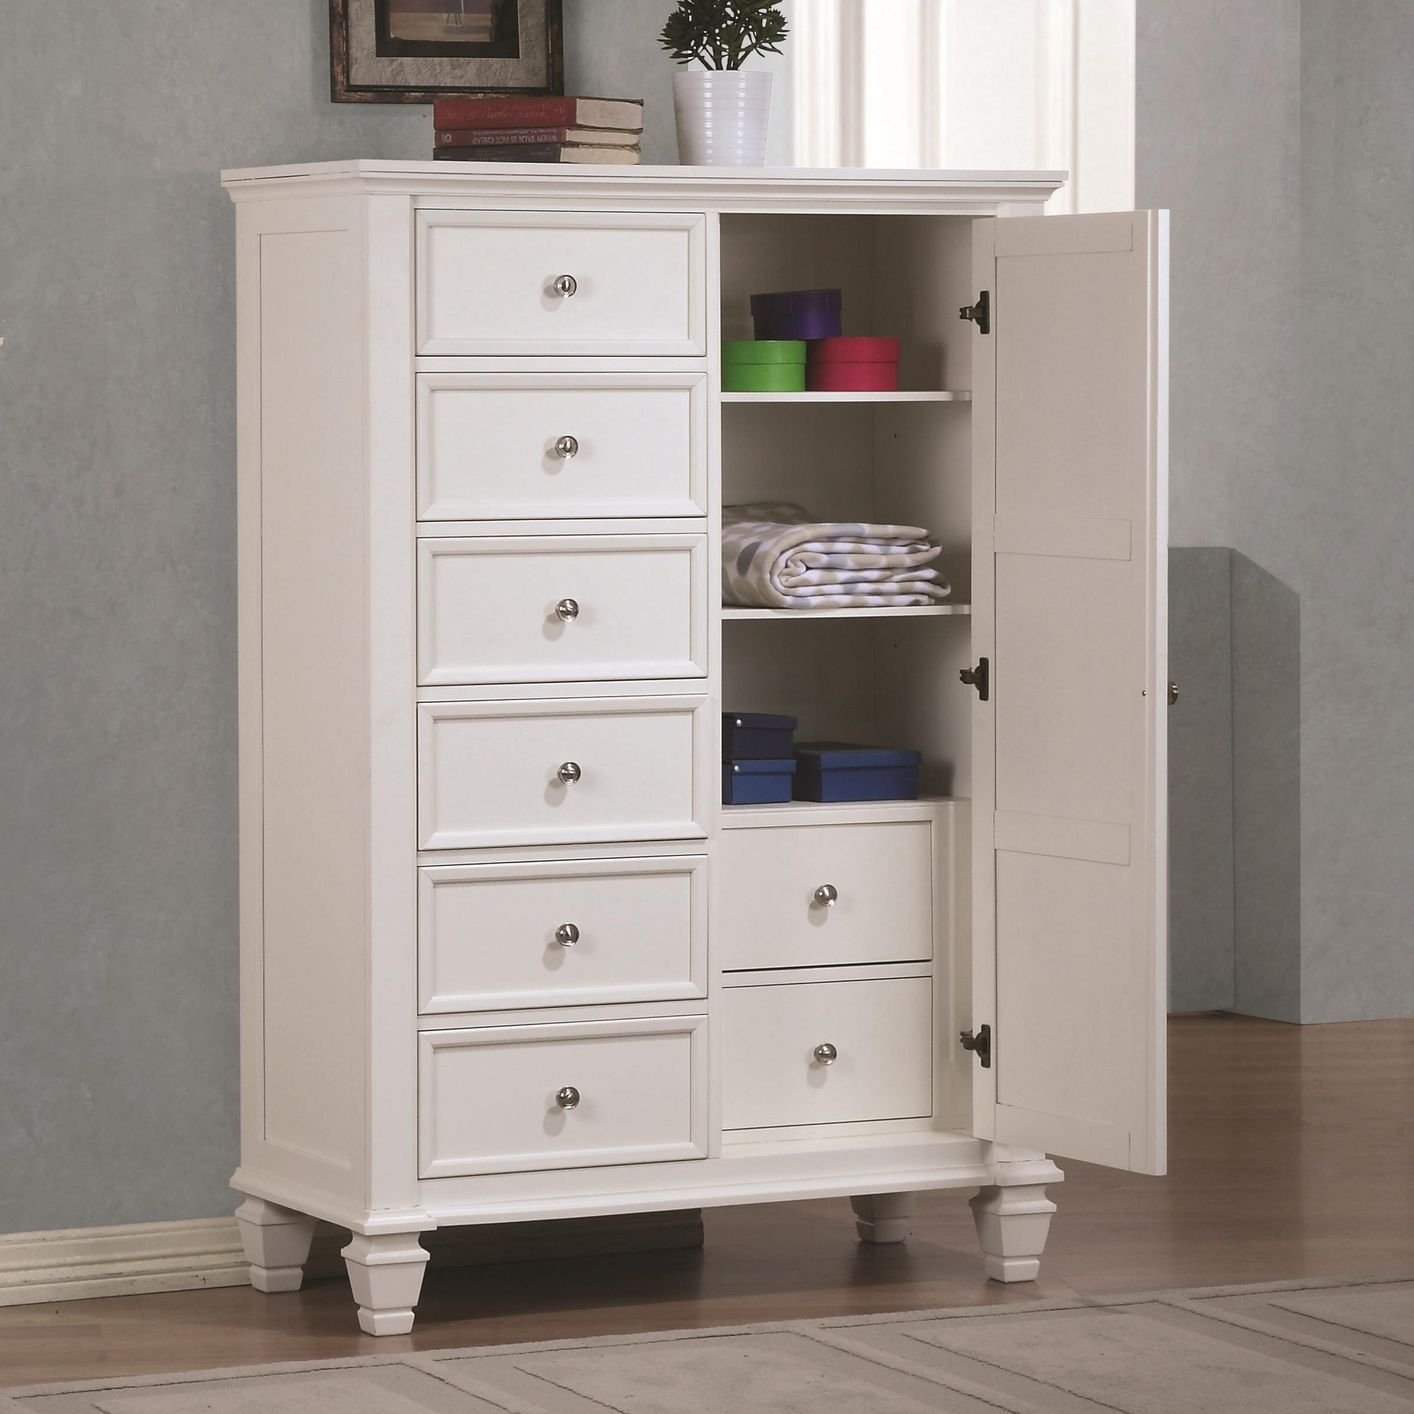 White wood chest of drawers WPZGBNG